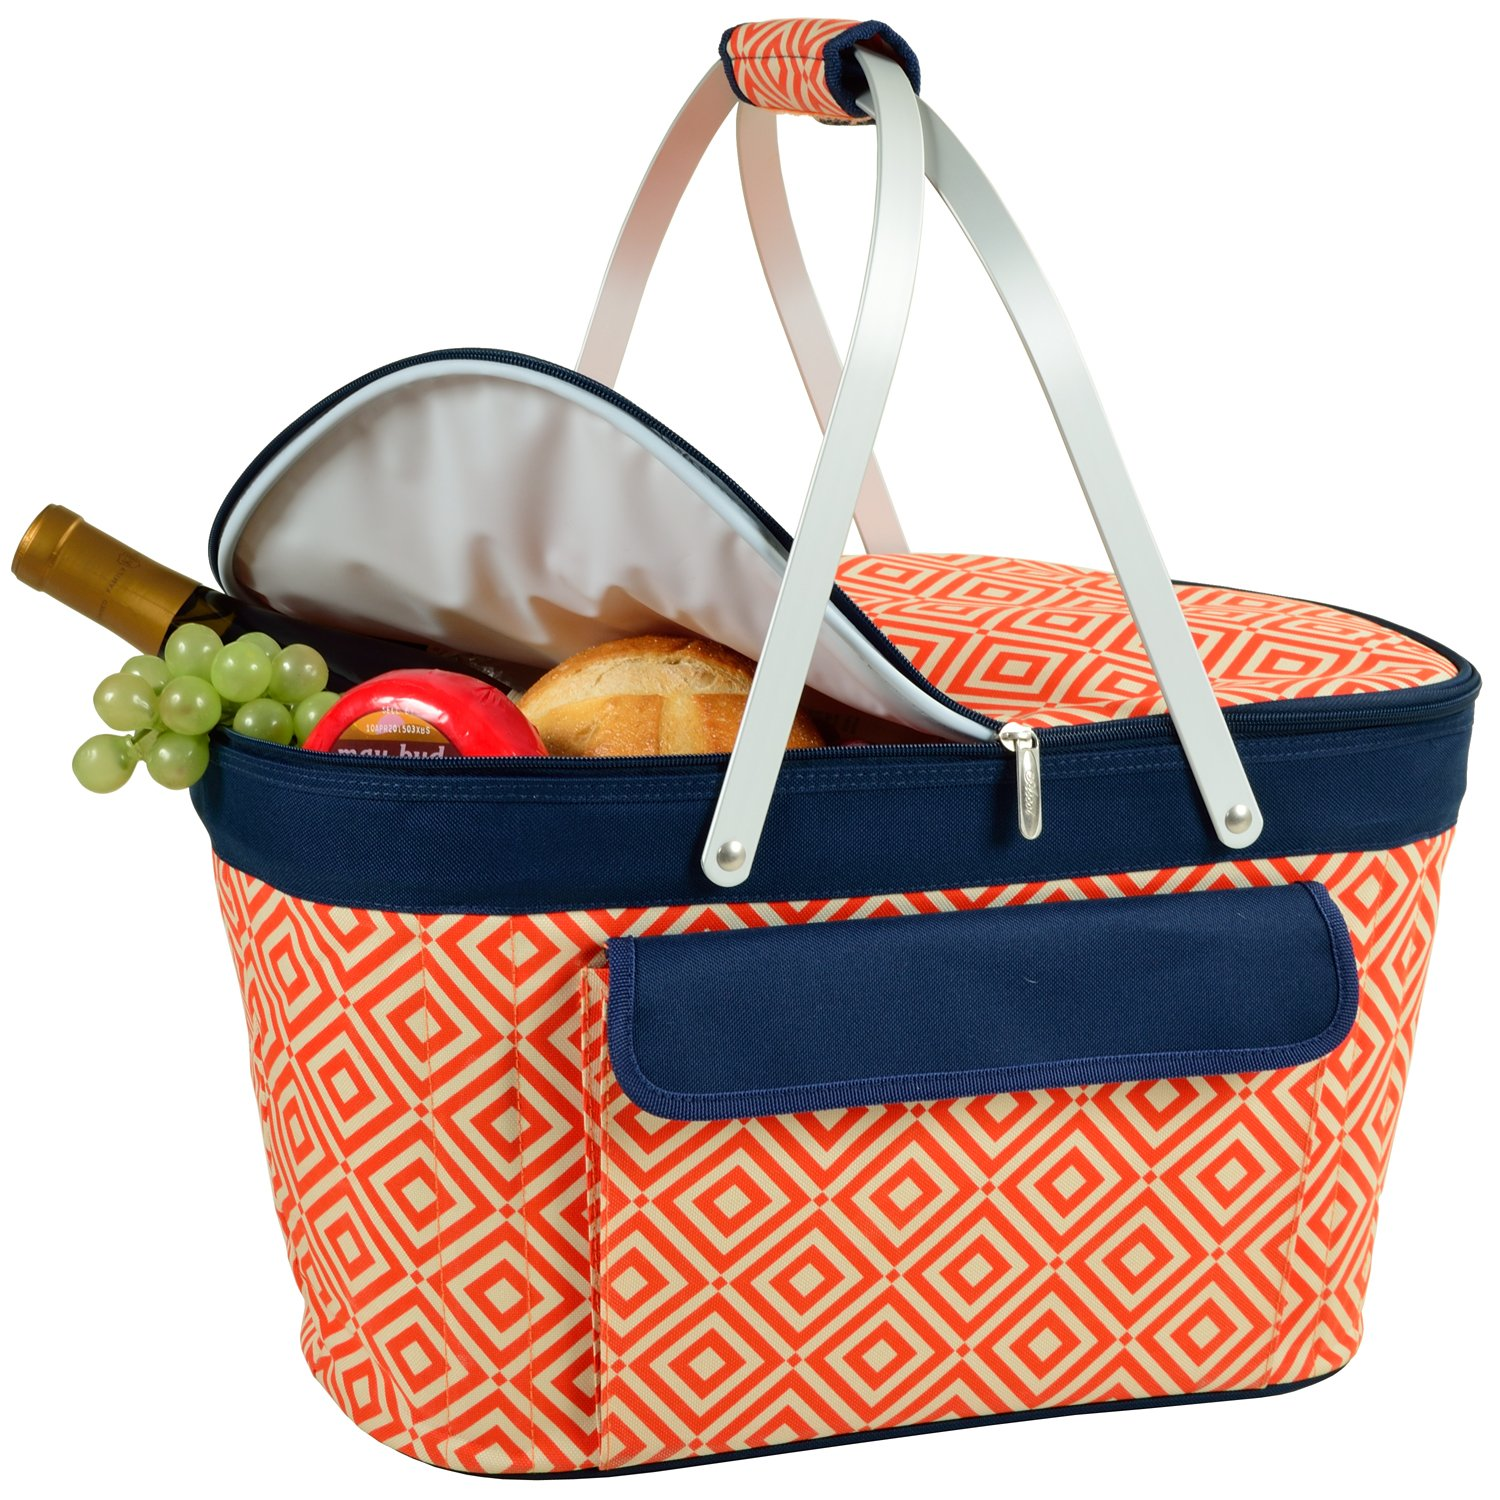 Picnic at Ascot Patented Insulated Folding Picnic Basket Cooler- Designed & Quality Approved in the USA by Picnic at Ascot